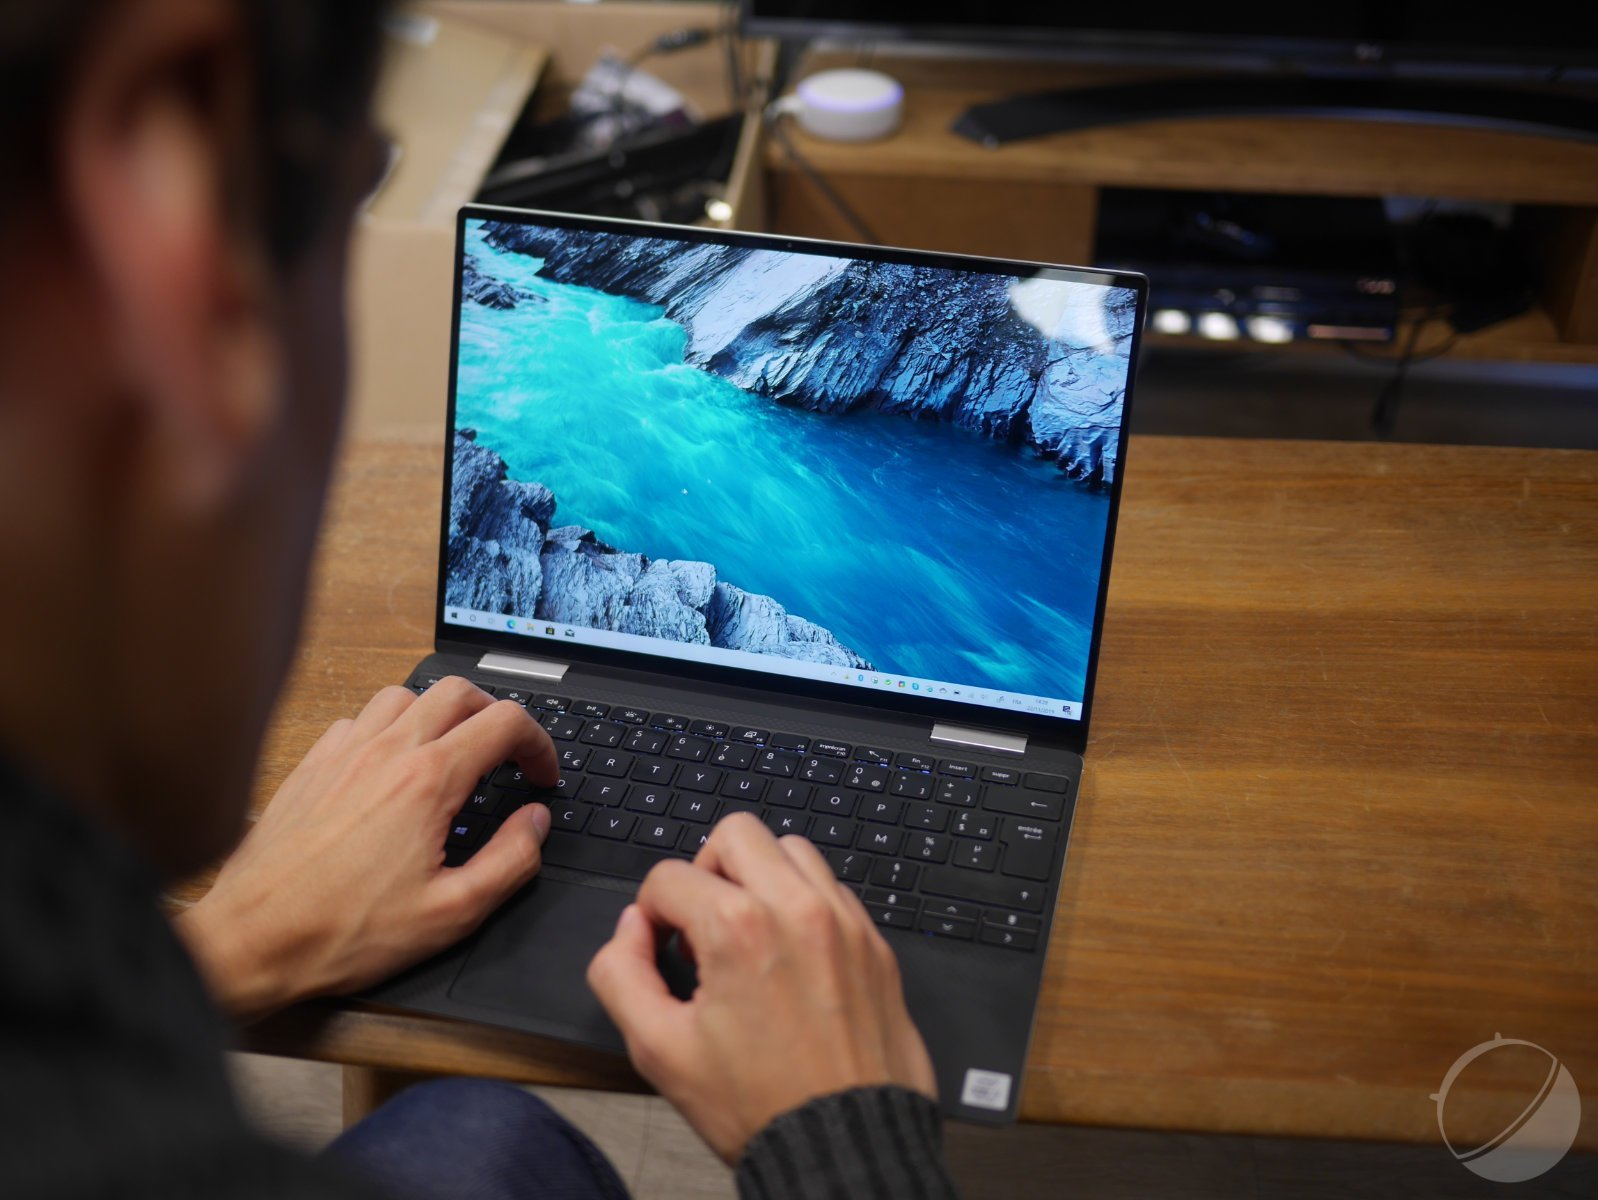 Test du Dell XPS 13 2-en-1 : meilleur ultrabook que tablette